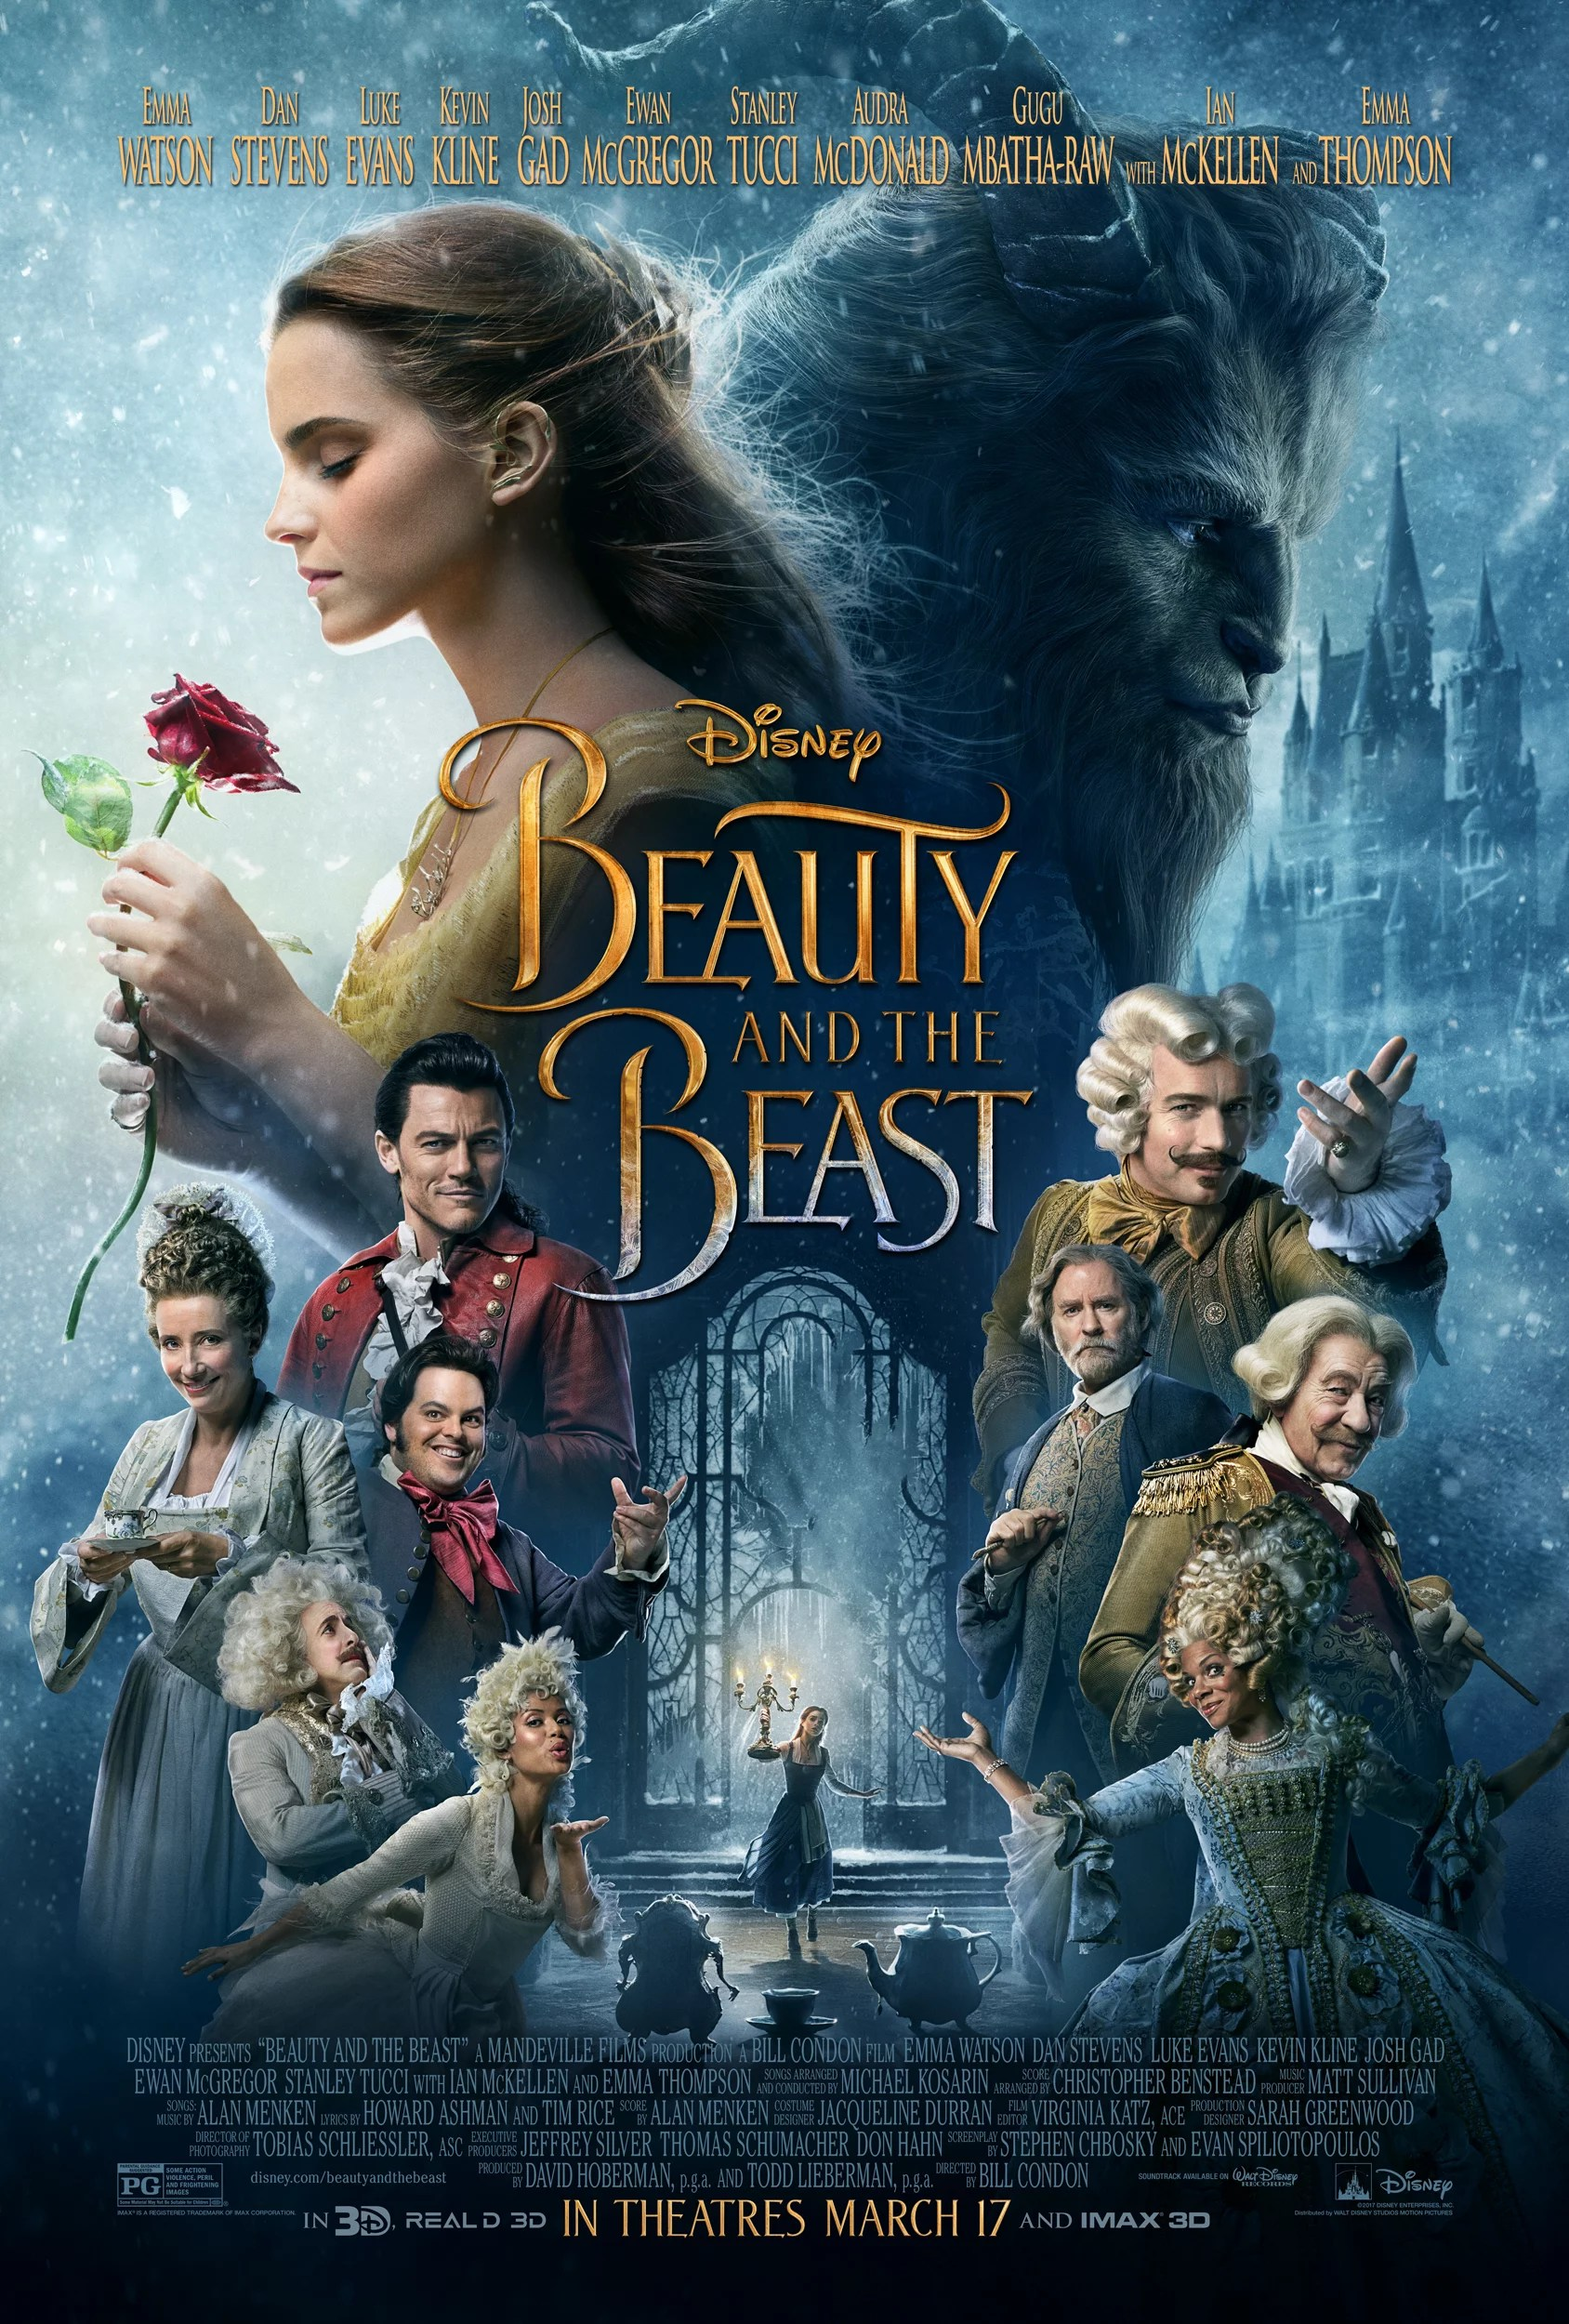 Belle S Ear On The Beauty And The Beast Poster